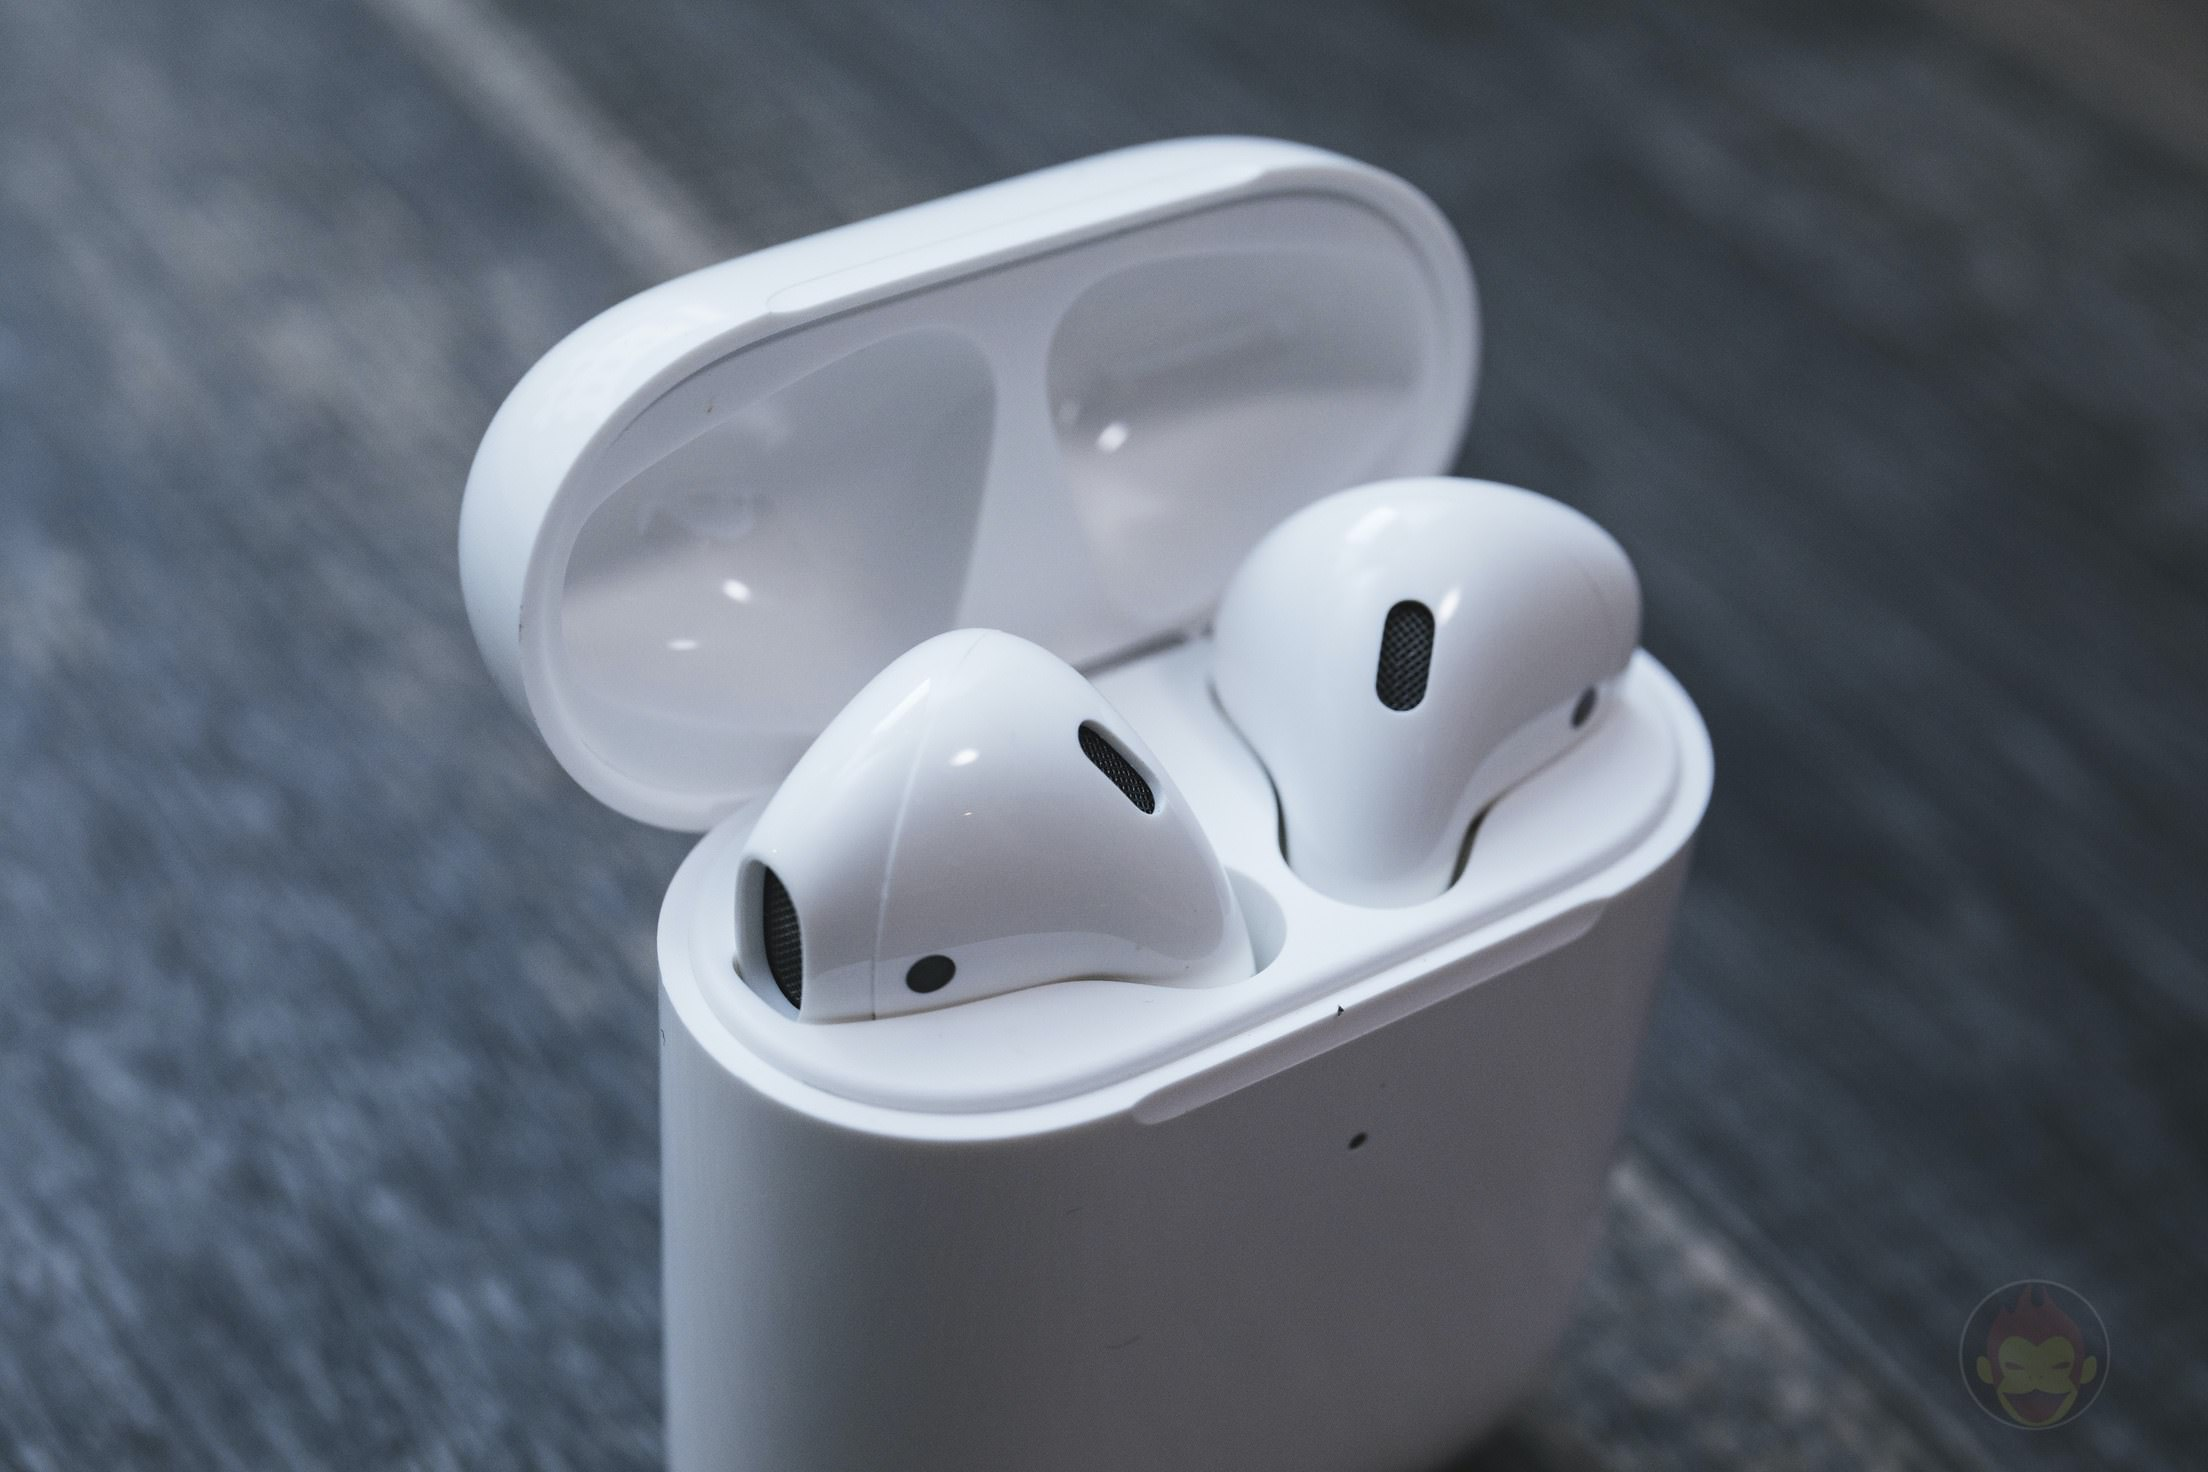 AirPods-2nd-Generation-2019-Review-20.jpg